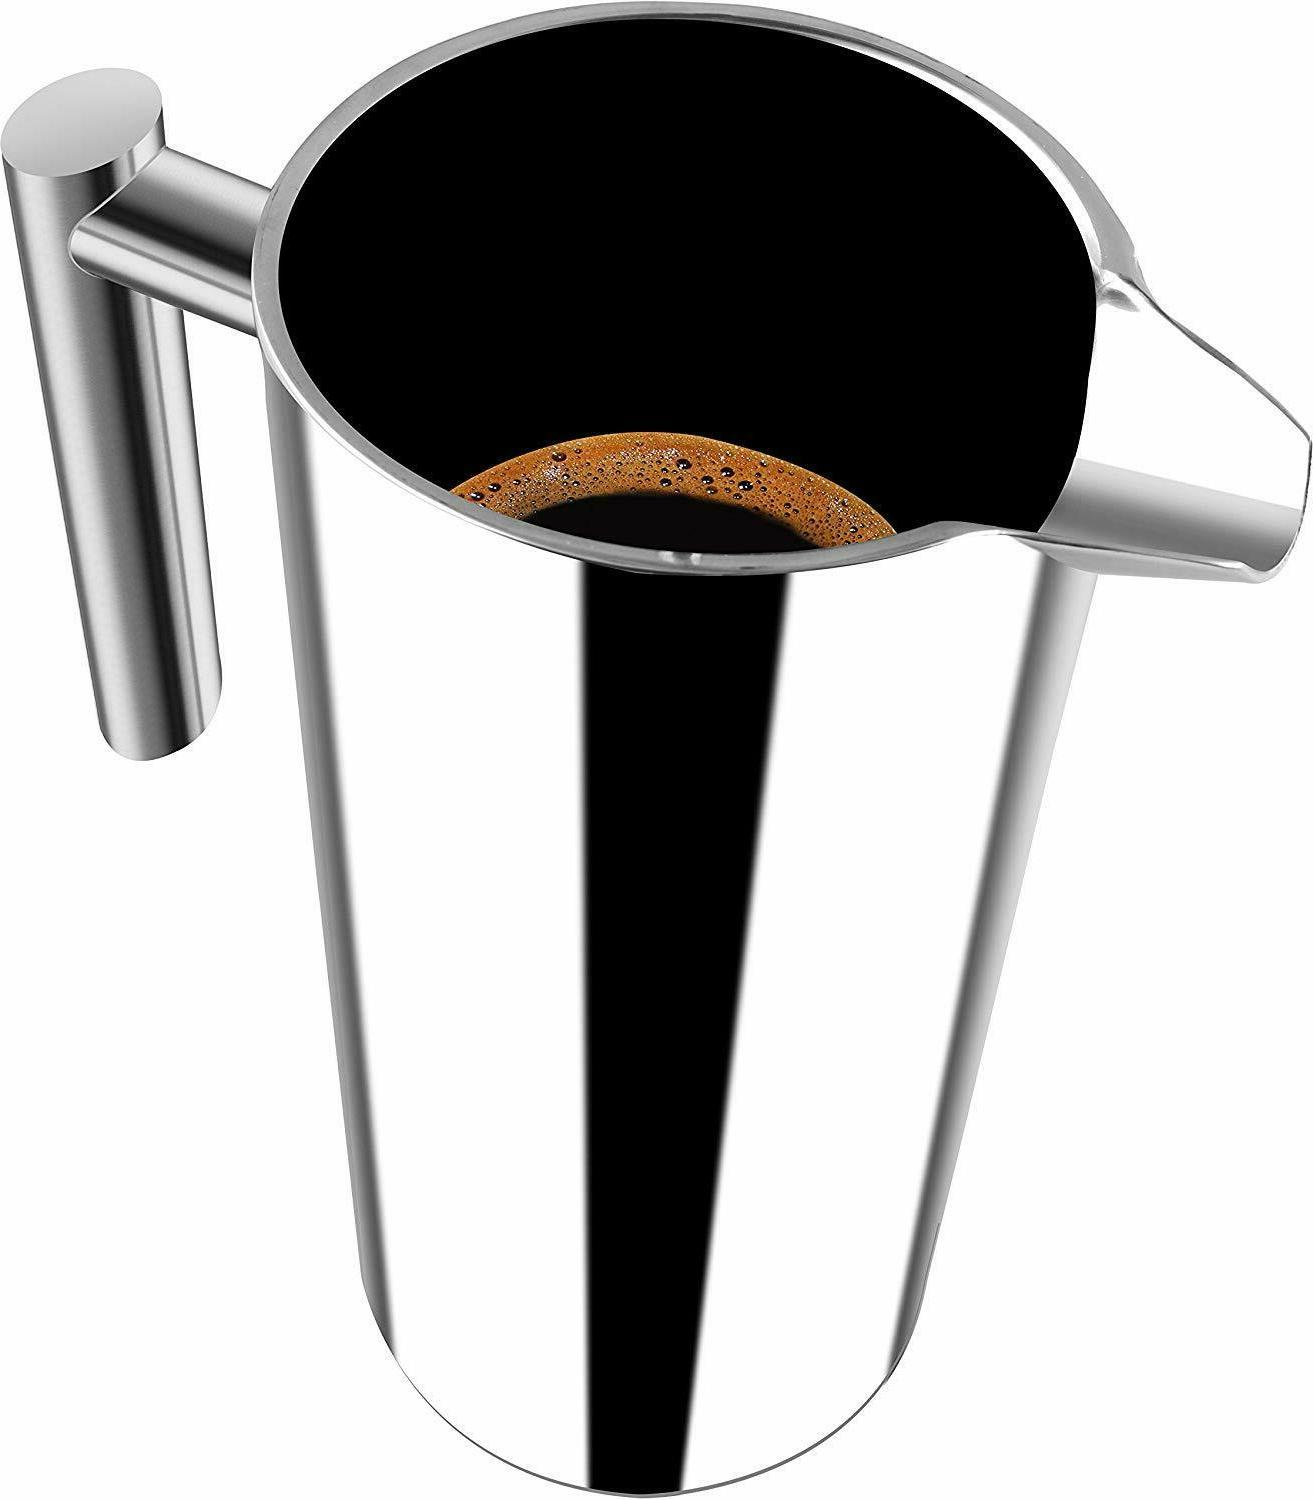 32 Coffee Double Stainless